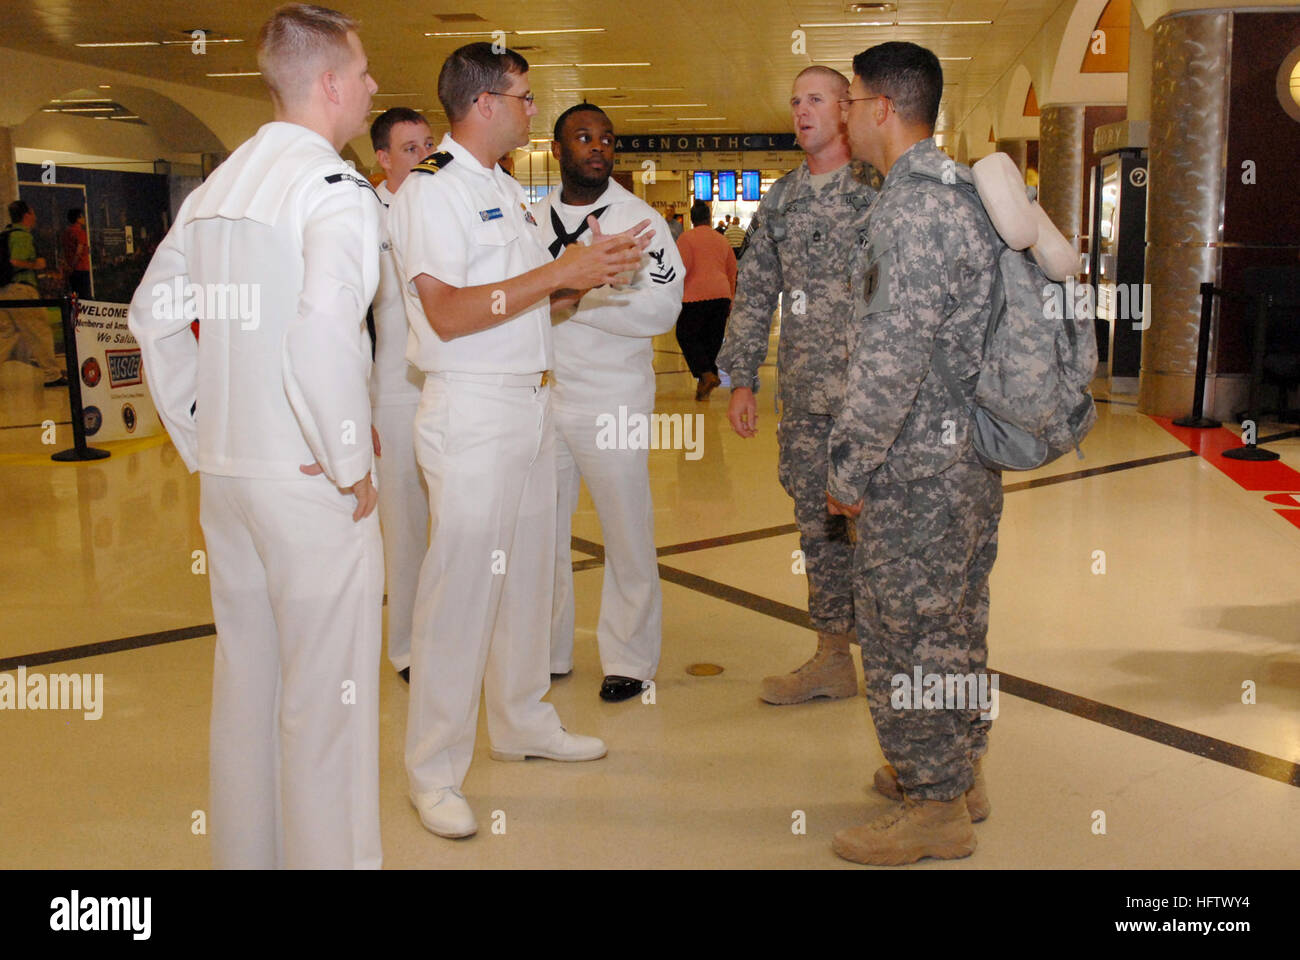 101012-N-6736S-007 ATLANTA (Oct. 12, 2010) Sailors from the guided-missile submarine USS Georgia (SSGN 729) greet - Stock Image